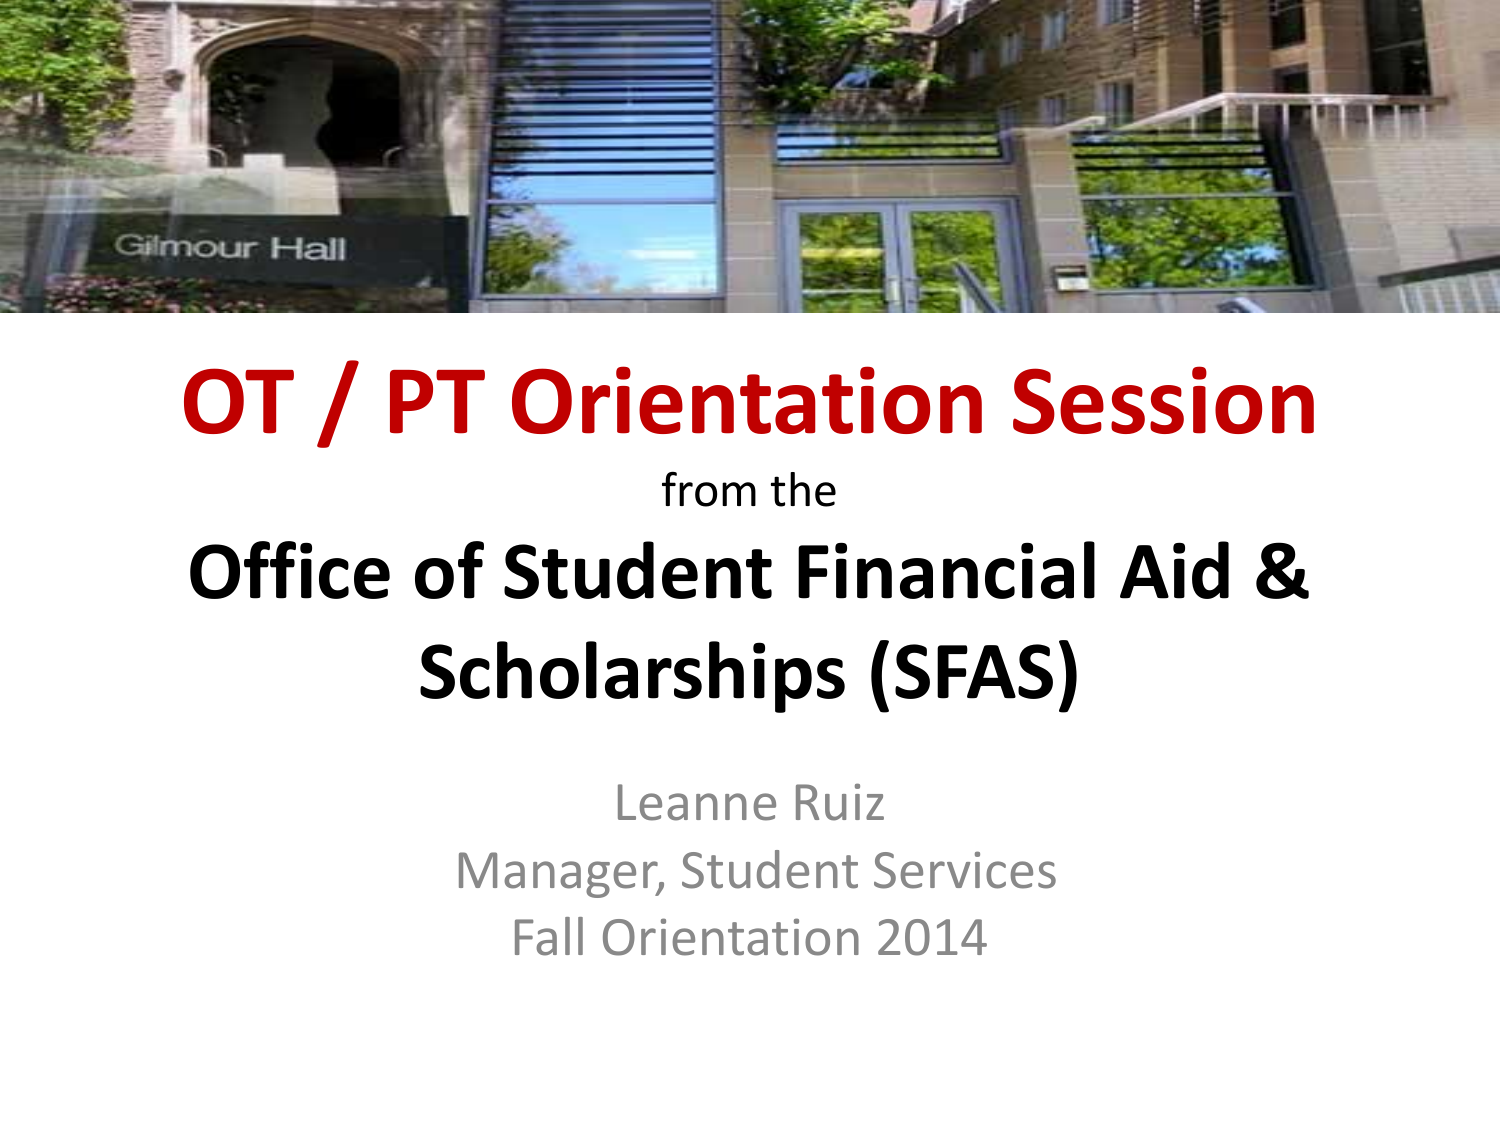 Ot Pt Orientation Session From The Office Of Student Financial Aid